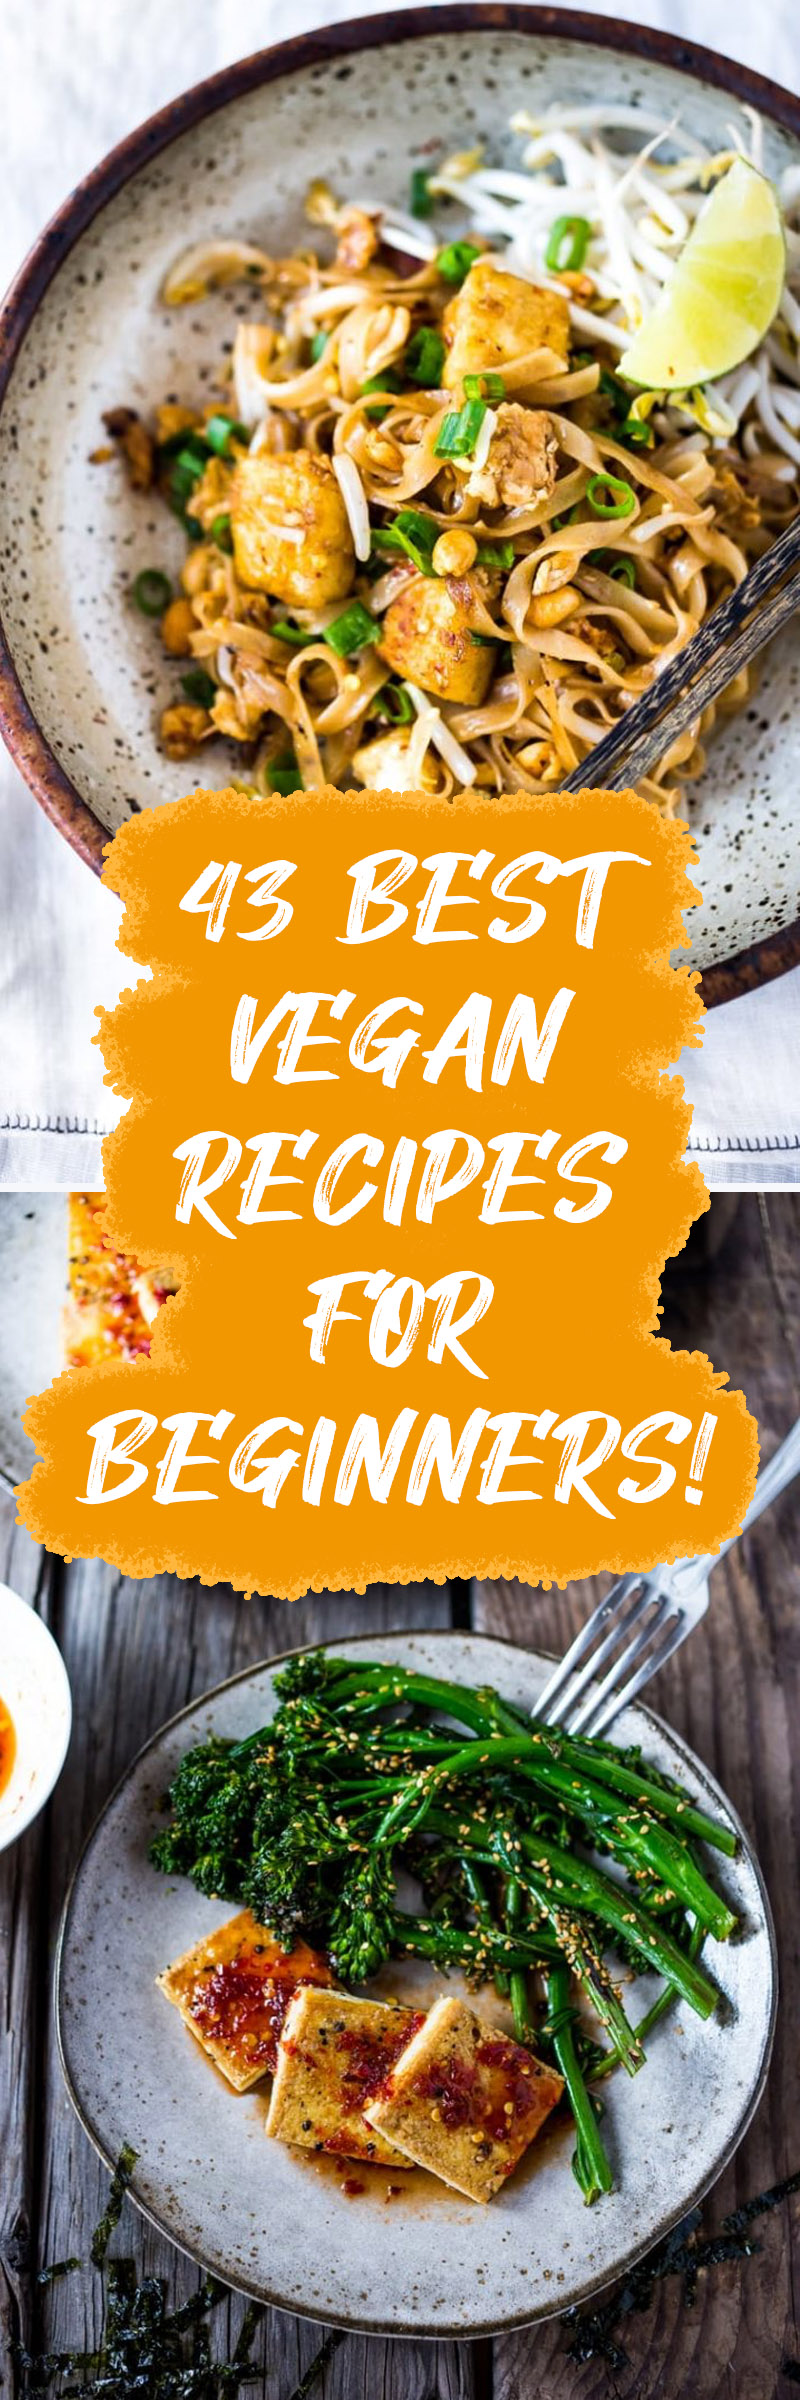 43 Easy Vegan Recipes For Rookies That Are Wholesome & Scrumptious! 1